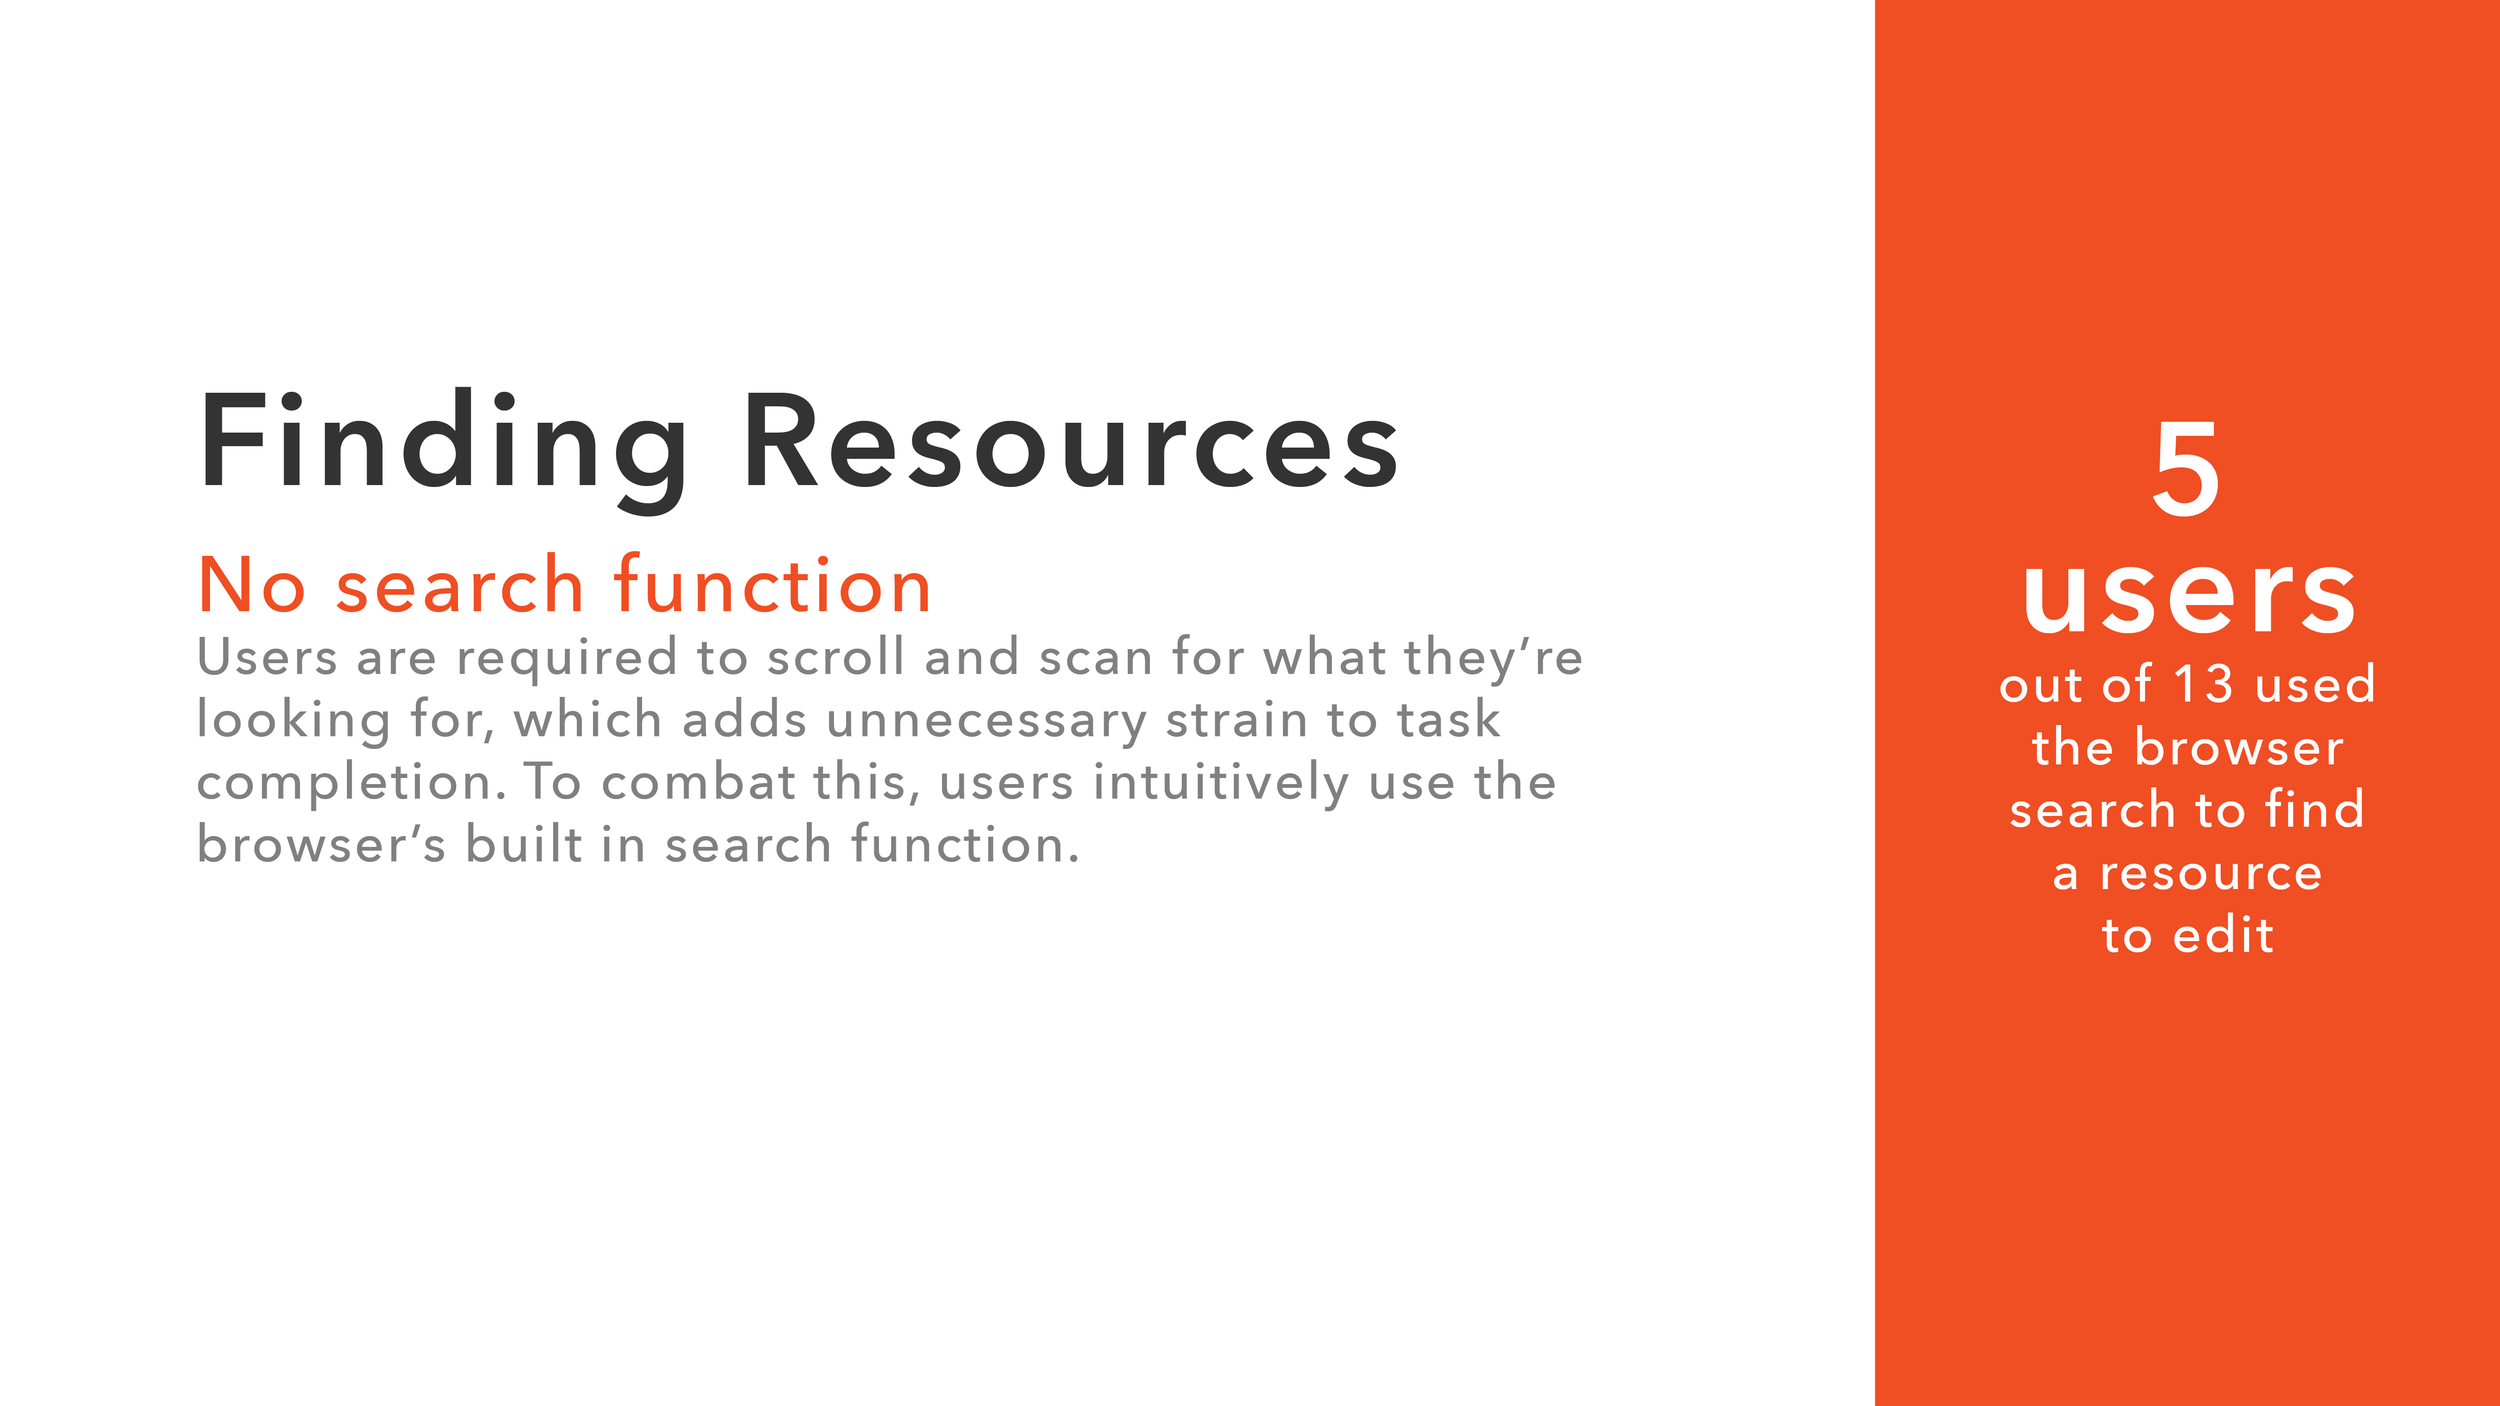 Findings Recommendations Report37.png